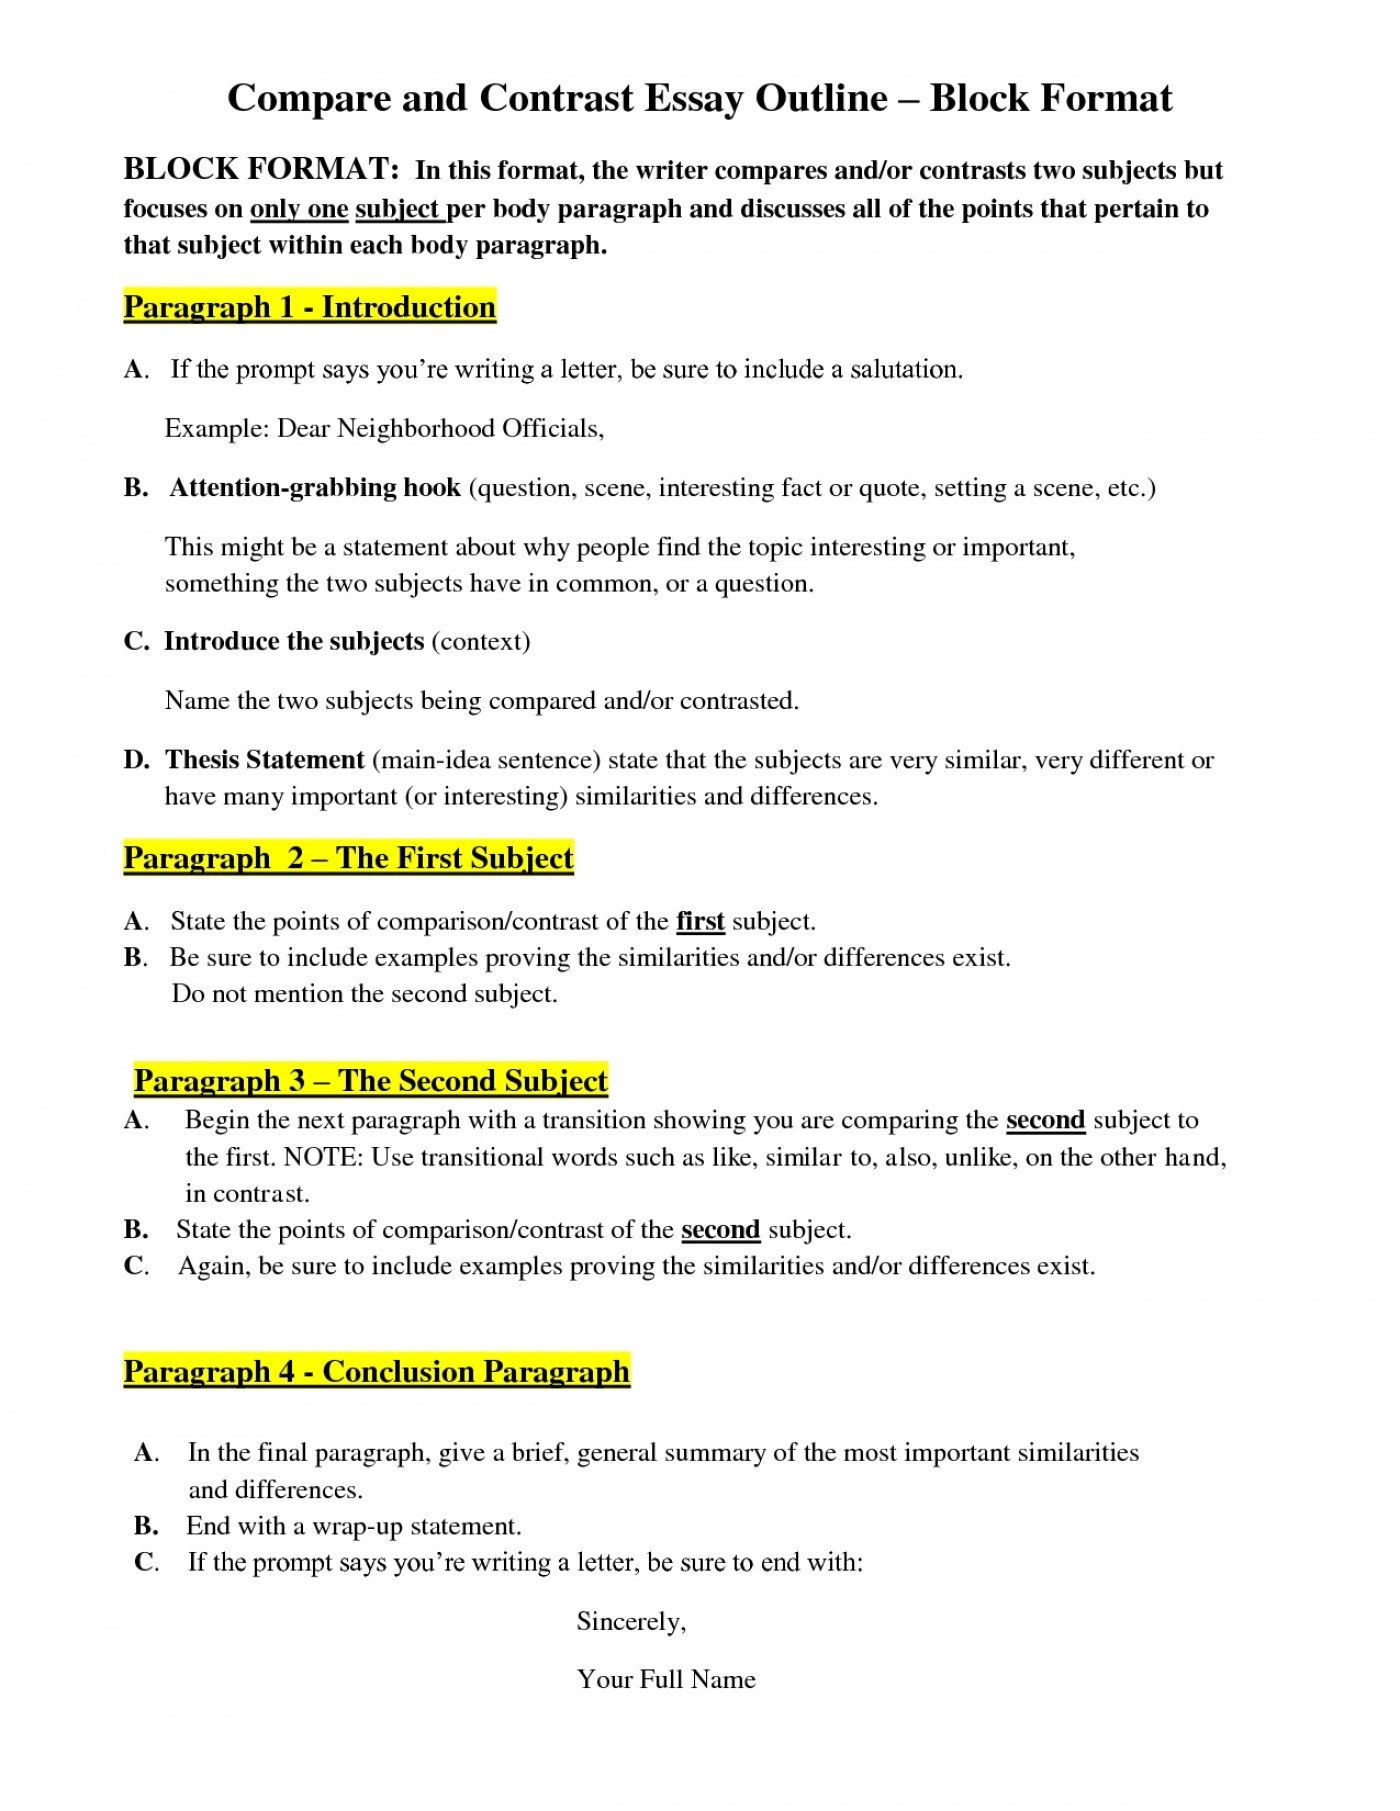 004 Essay Template Compare Contrast Outline Example Maxresdefault Creating Project Plan For Your Youtube How To An With Good Cover Letter Samples Point Wonderful By And 1400